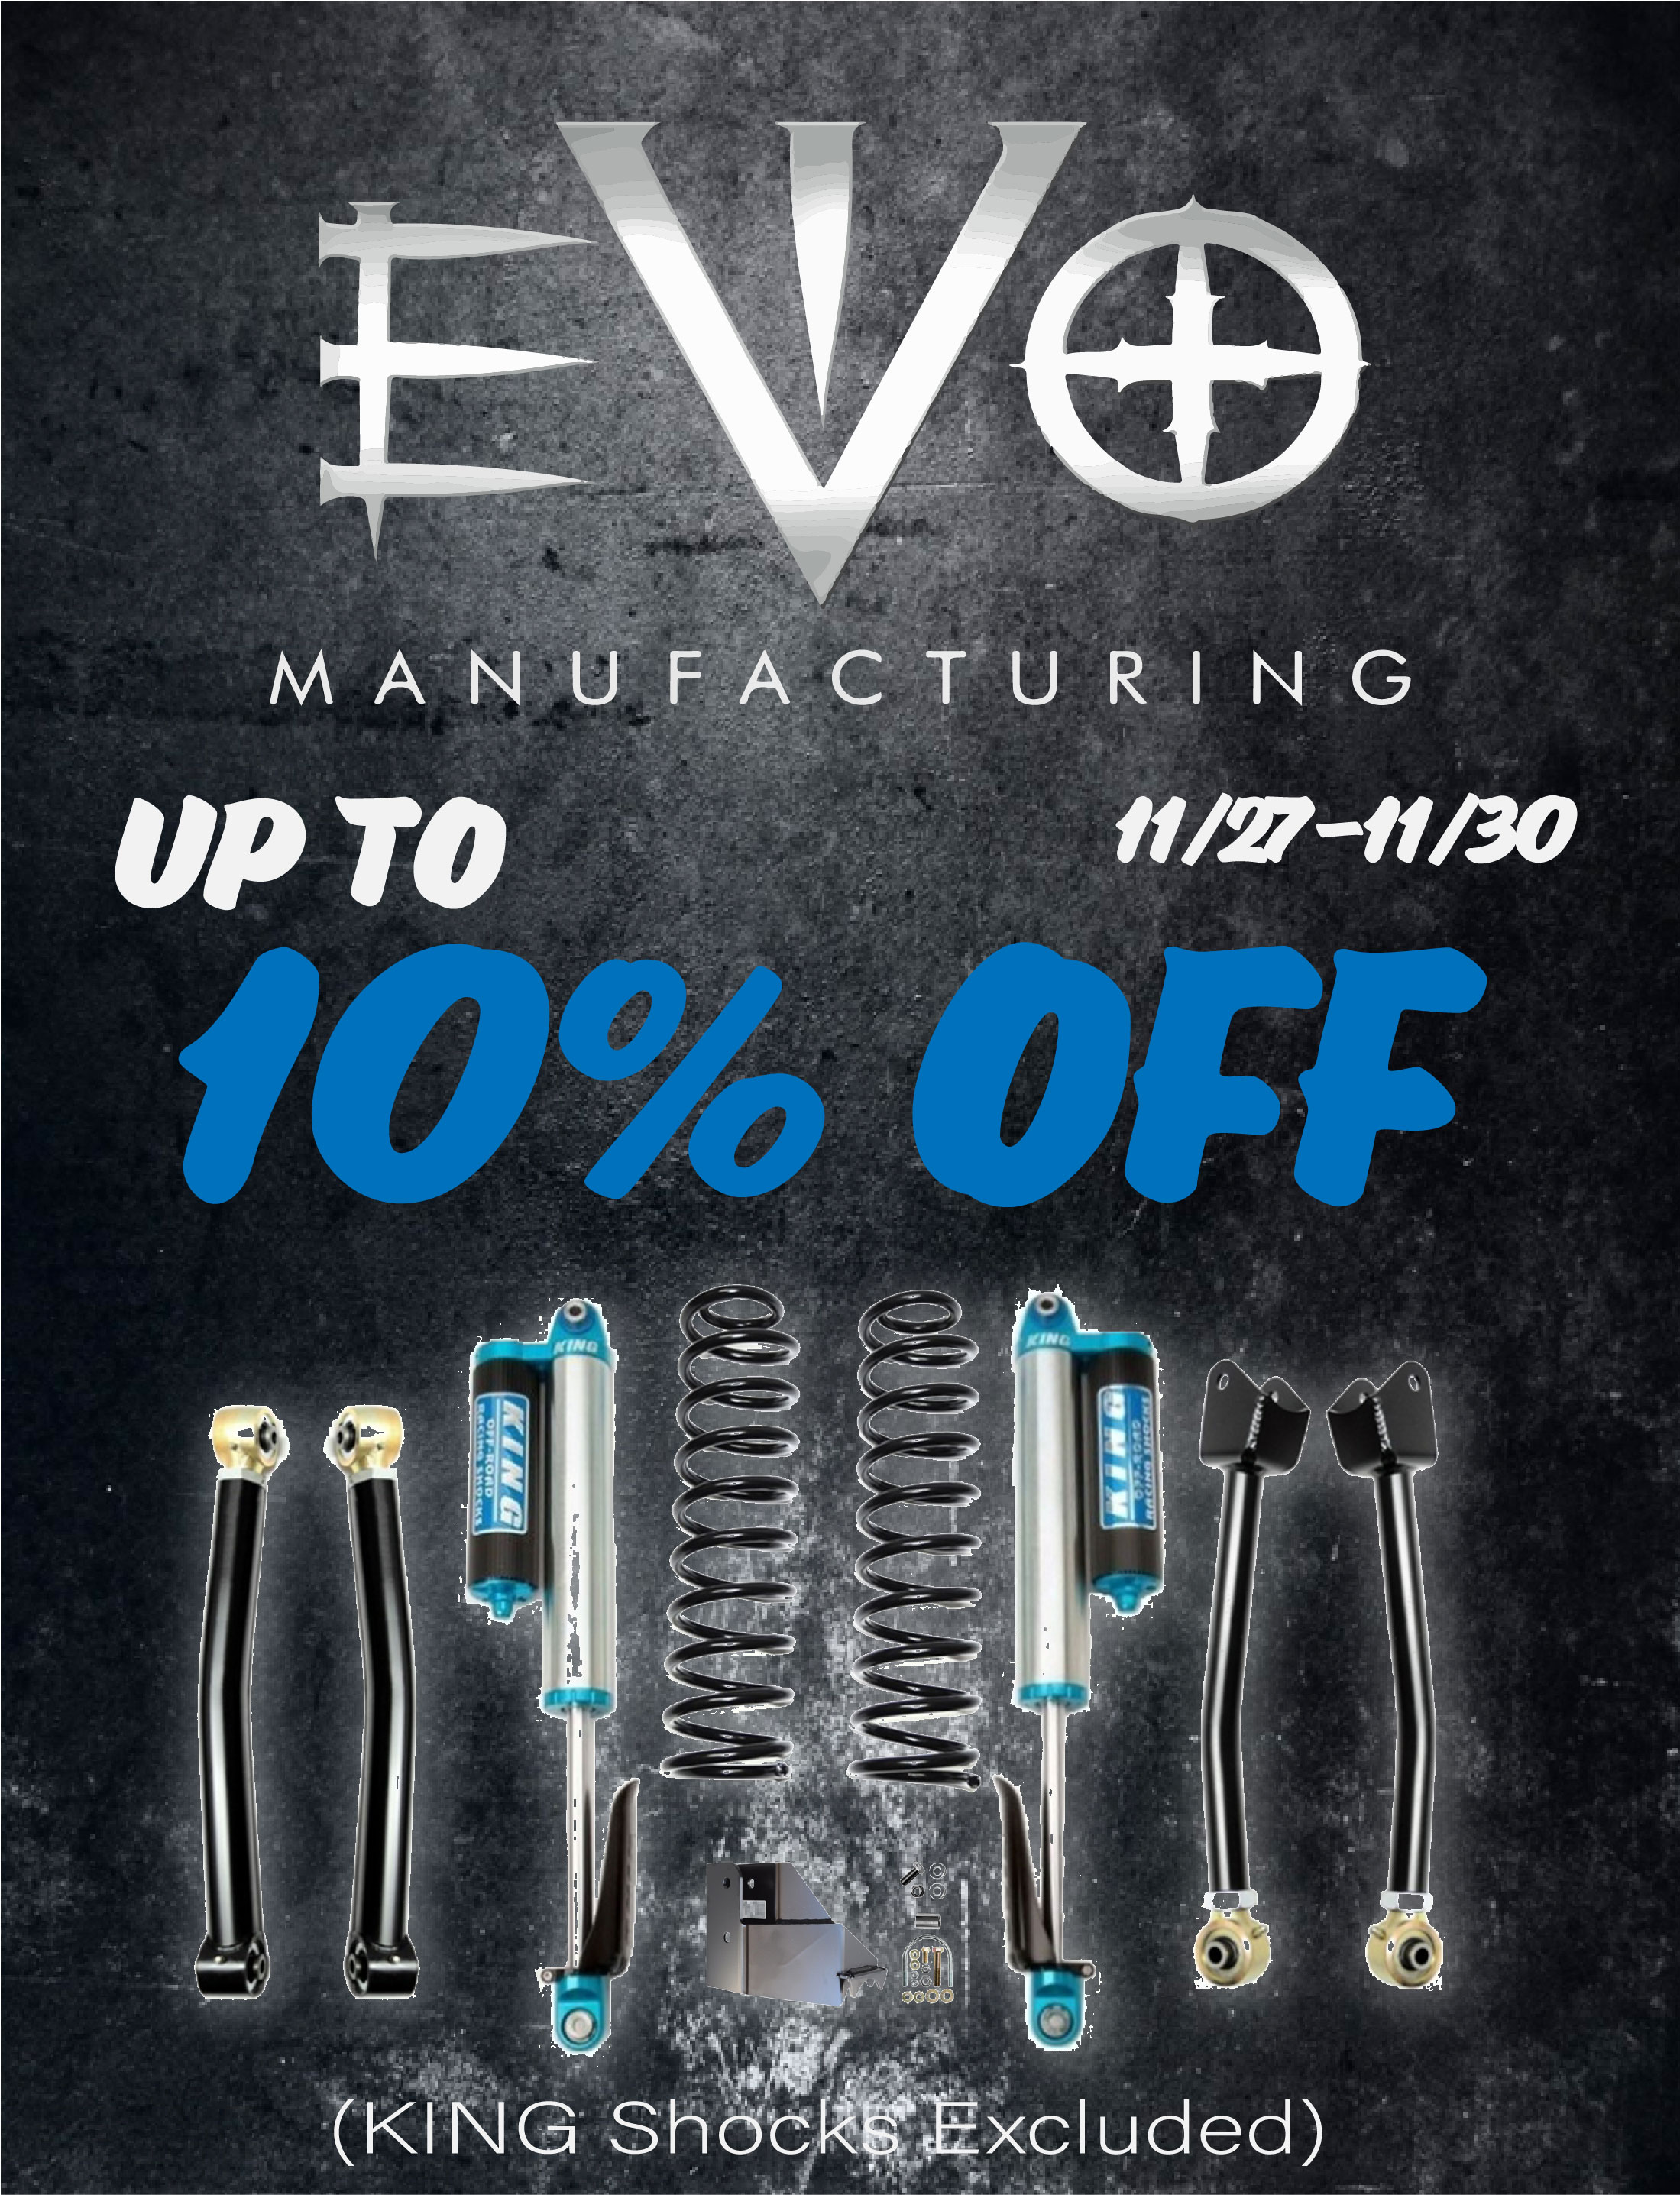 Up to 10% OFF EVO MFG